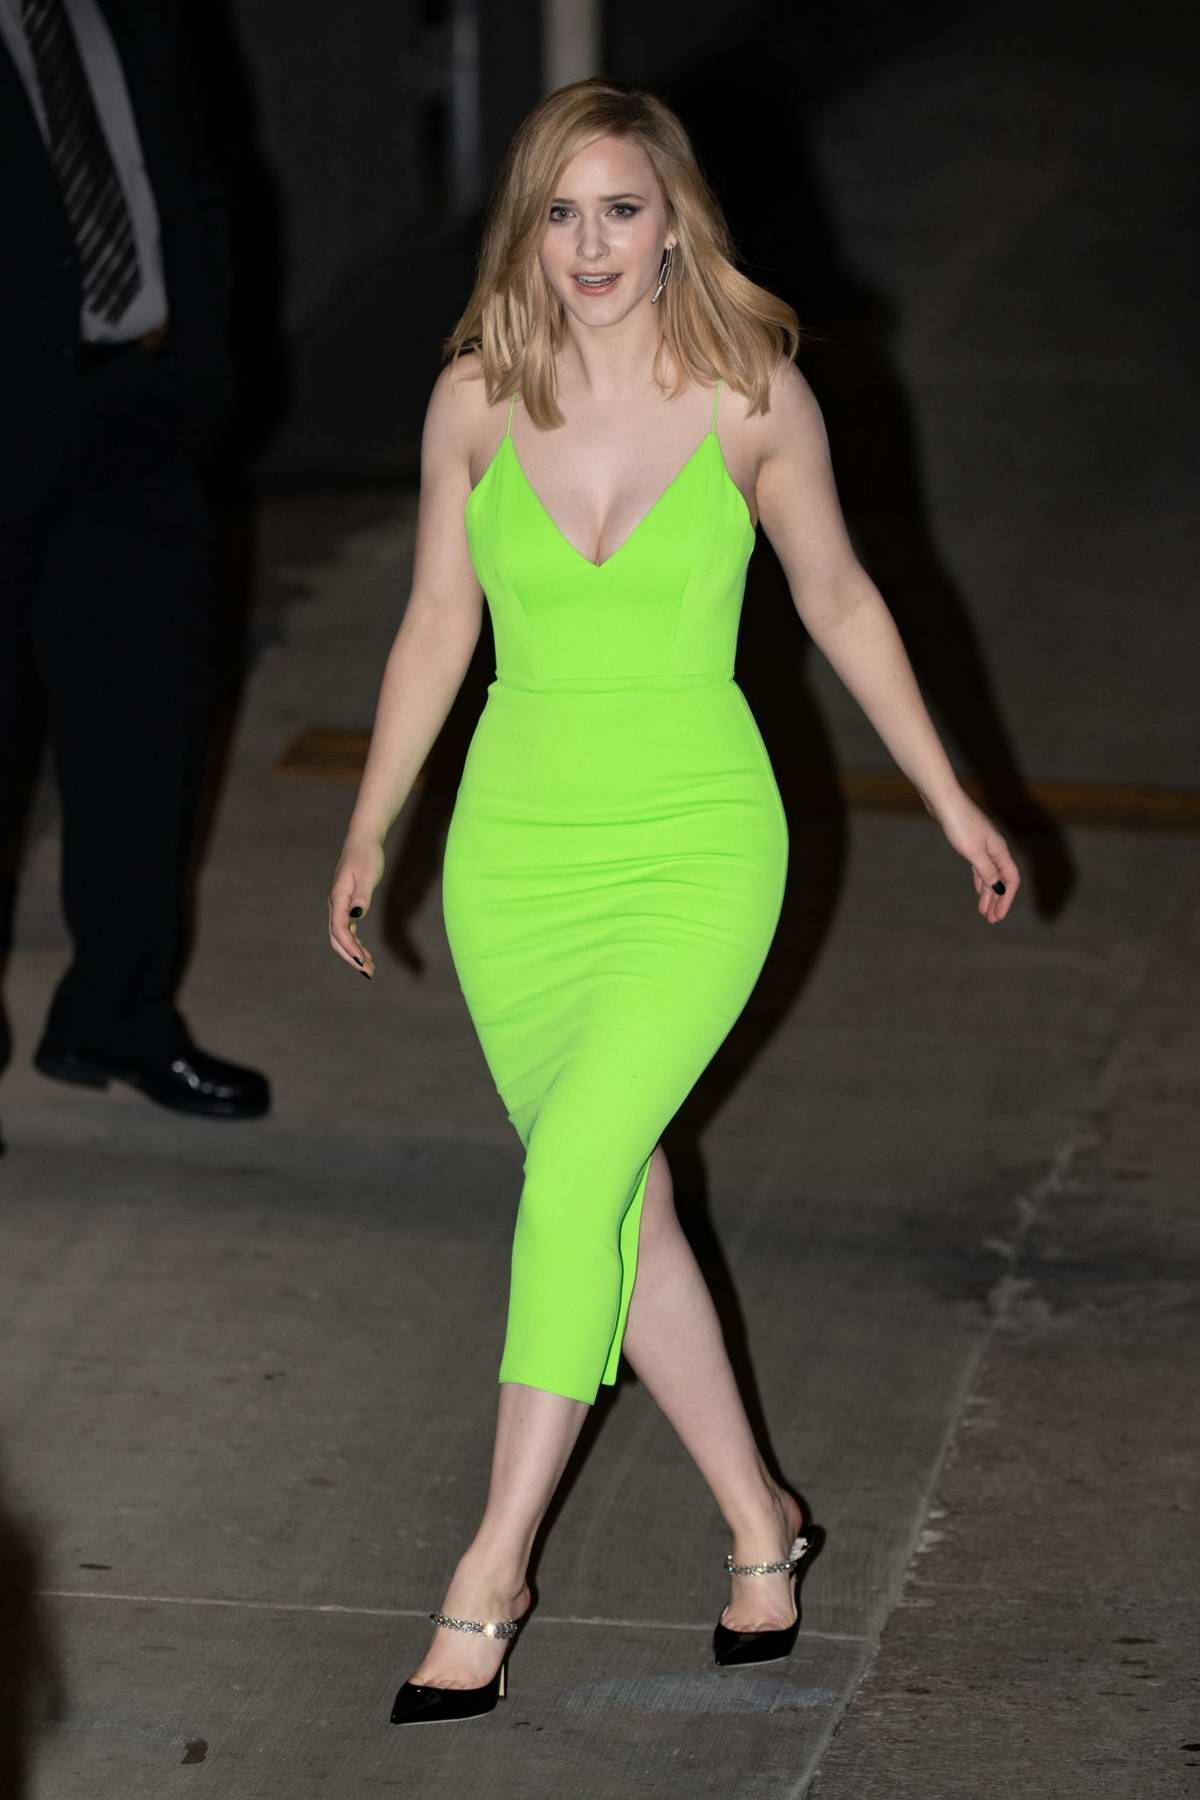 Rachel Brosnahan stuns in a neon green dress as she leaves 'Jimmy Kimmel Live' in Hollywood, California